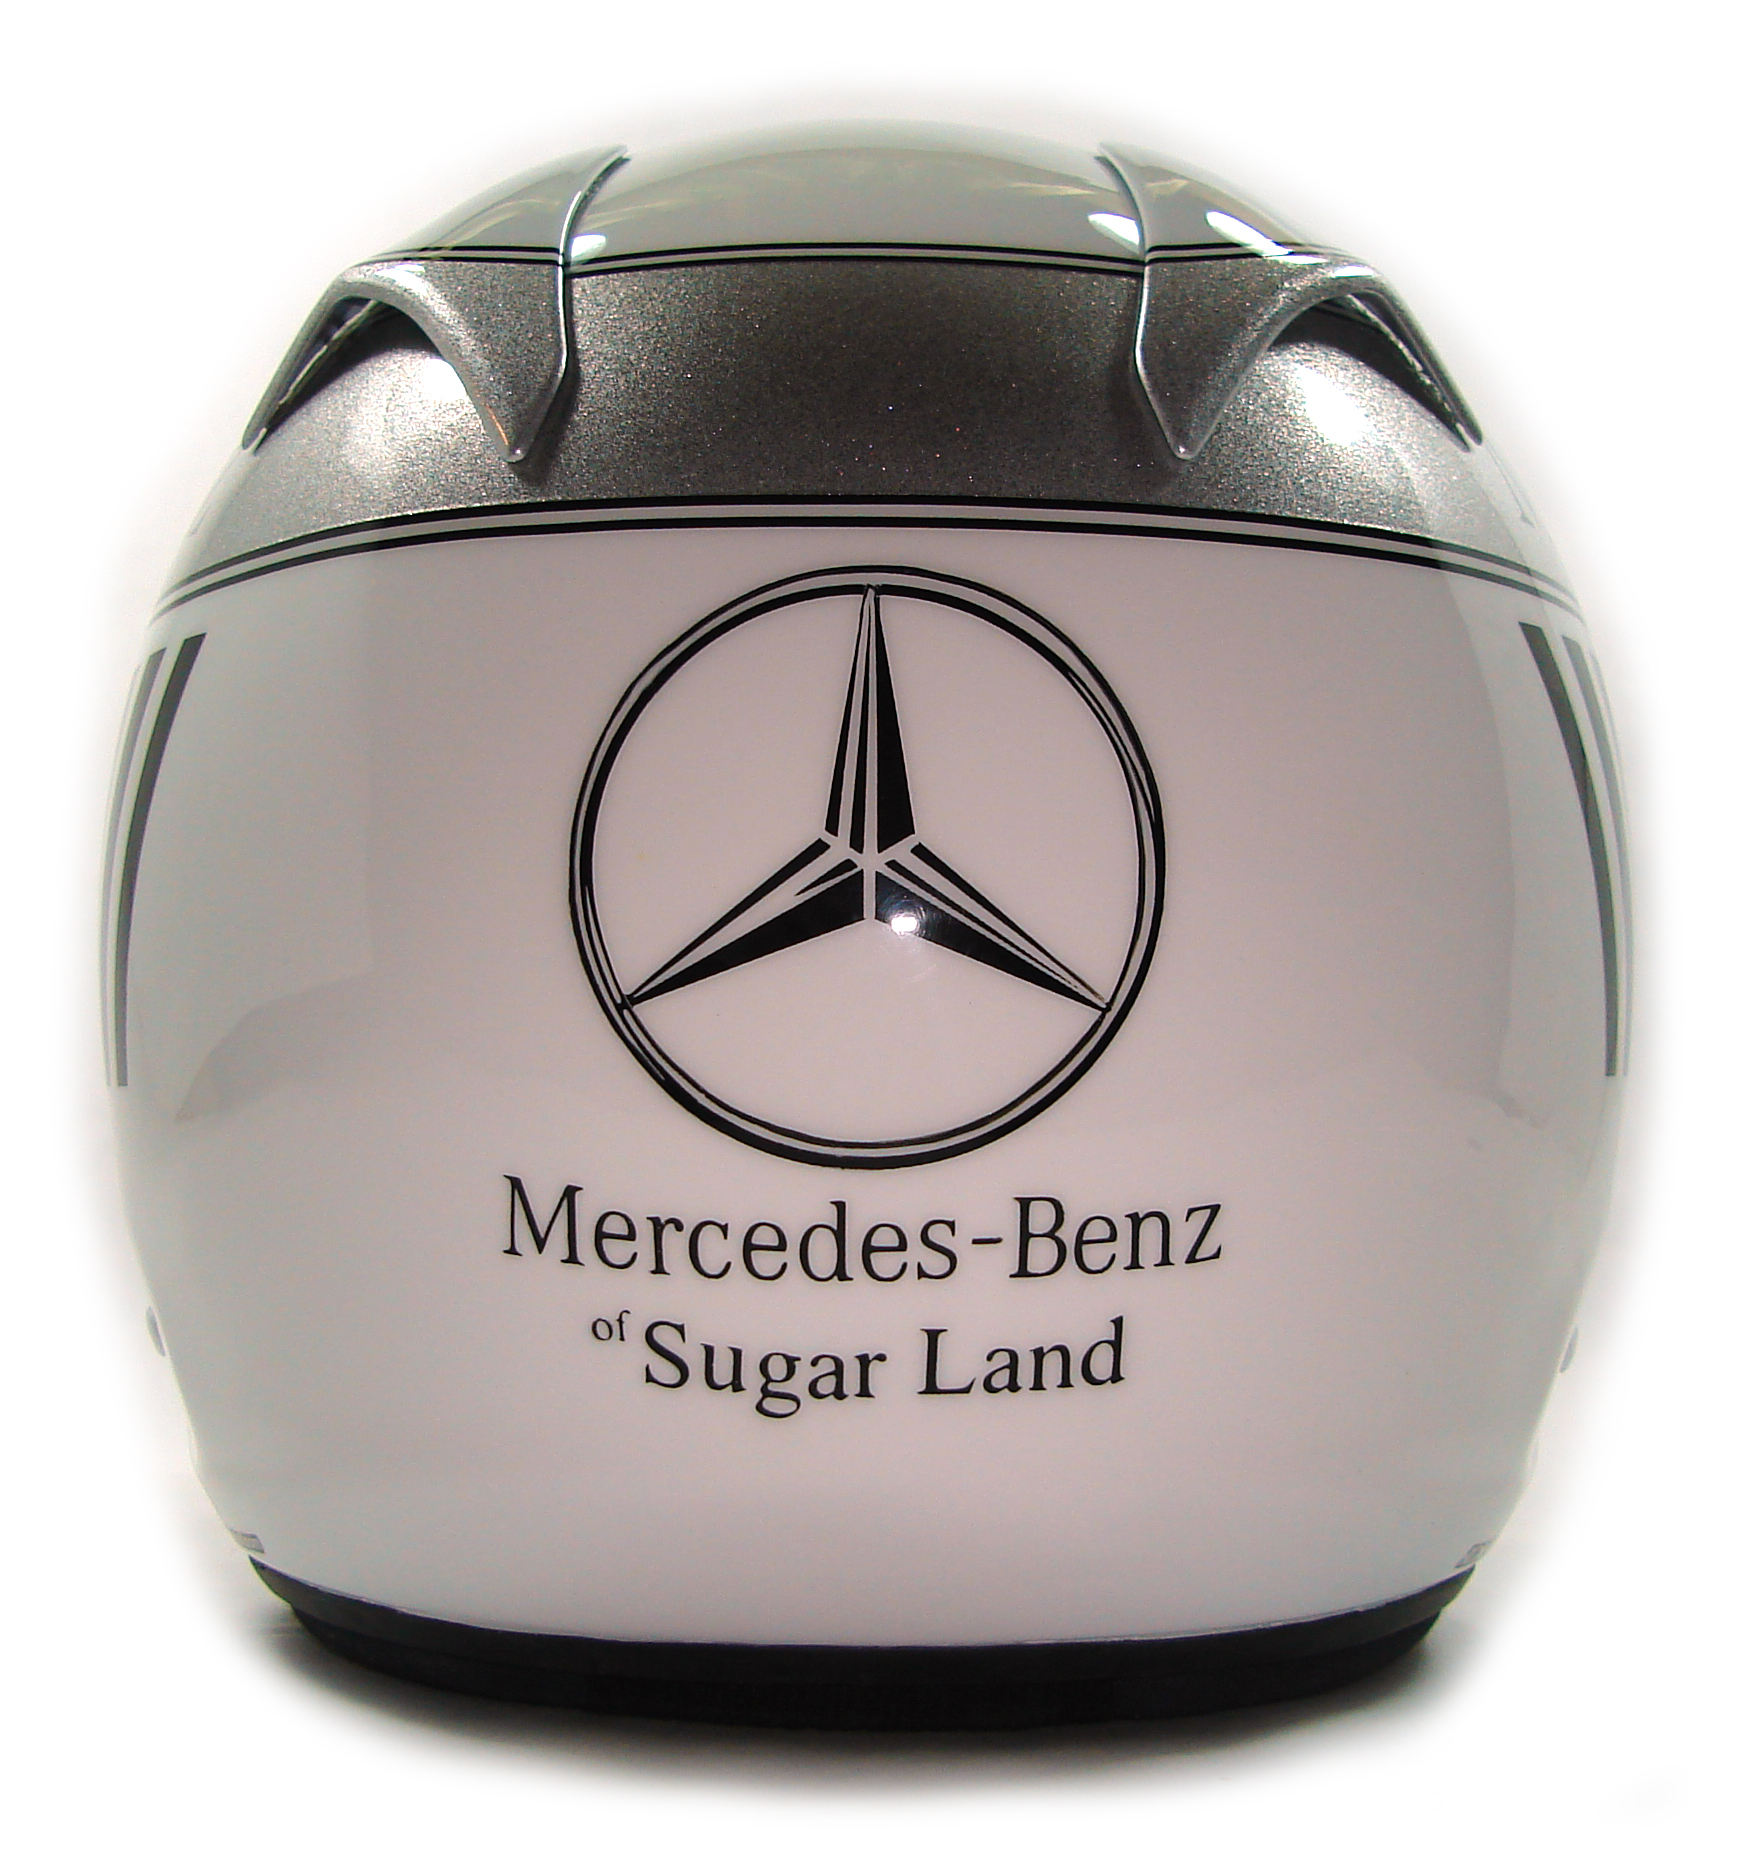 Custom painted helmet gallery mercedes benz amg helmet for Mercedes benz sugarland